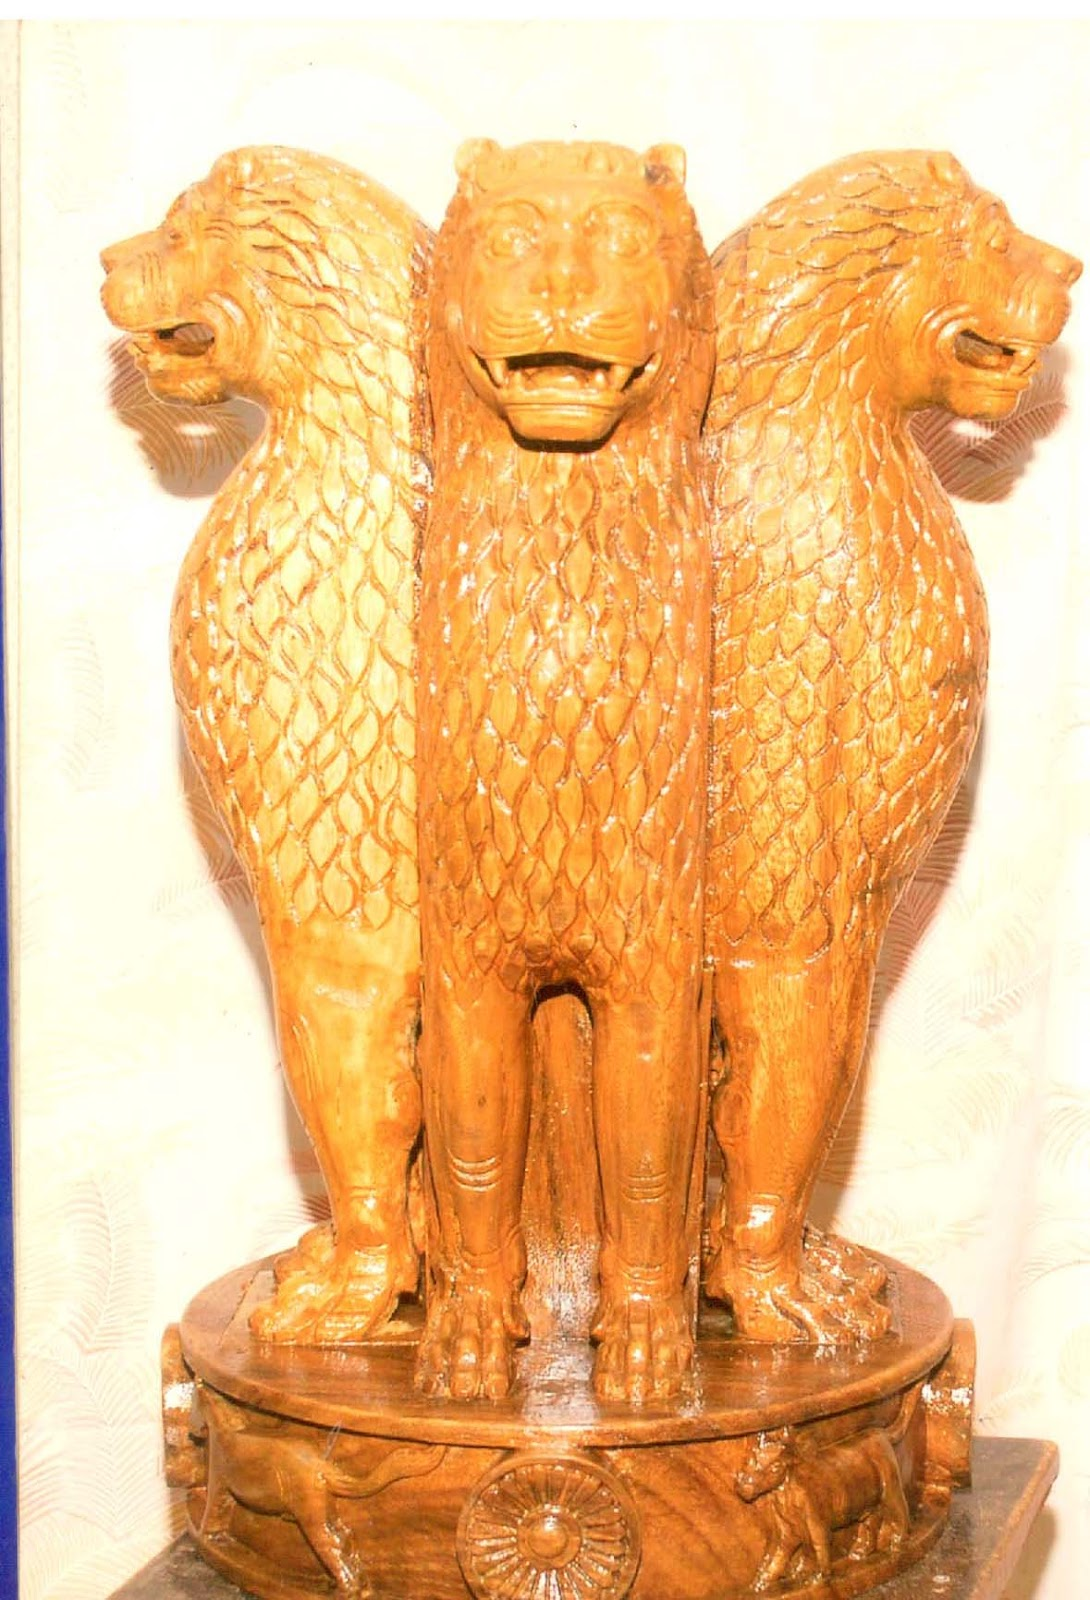 Wood carvings for sale photos